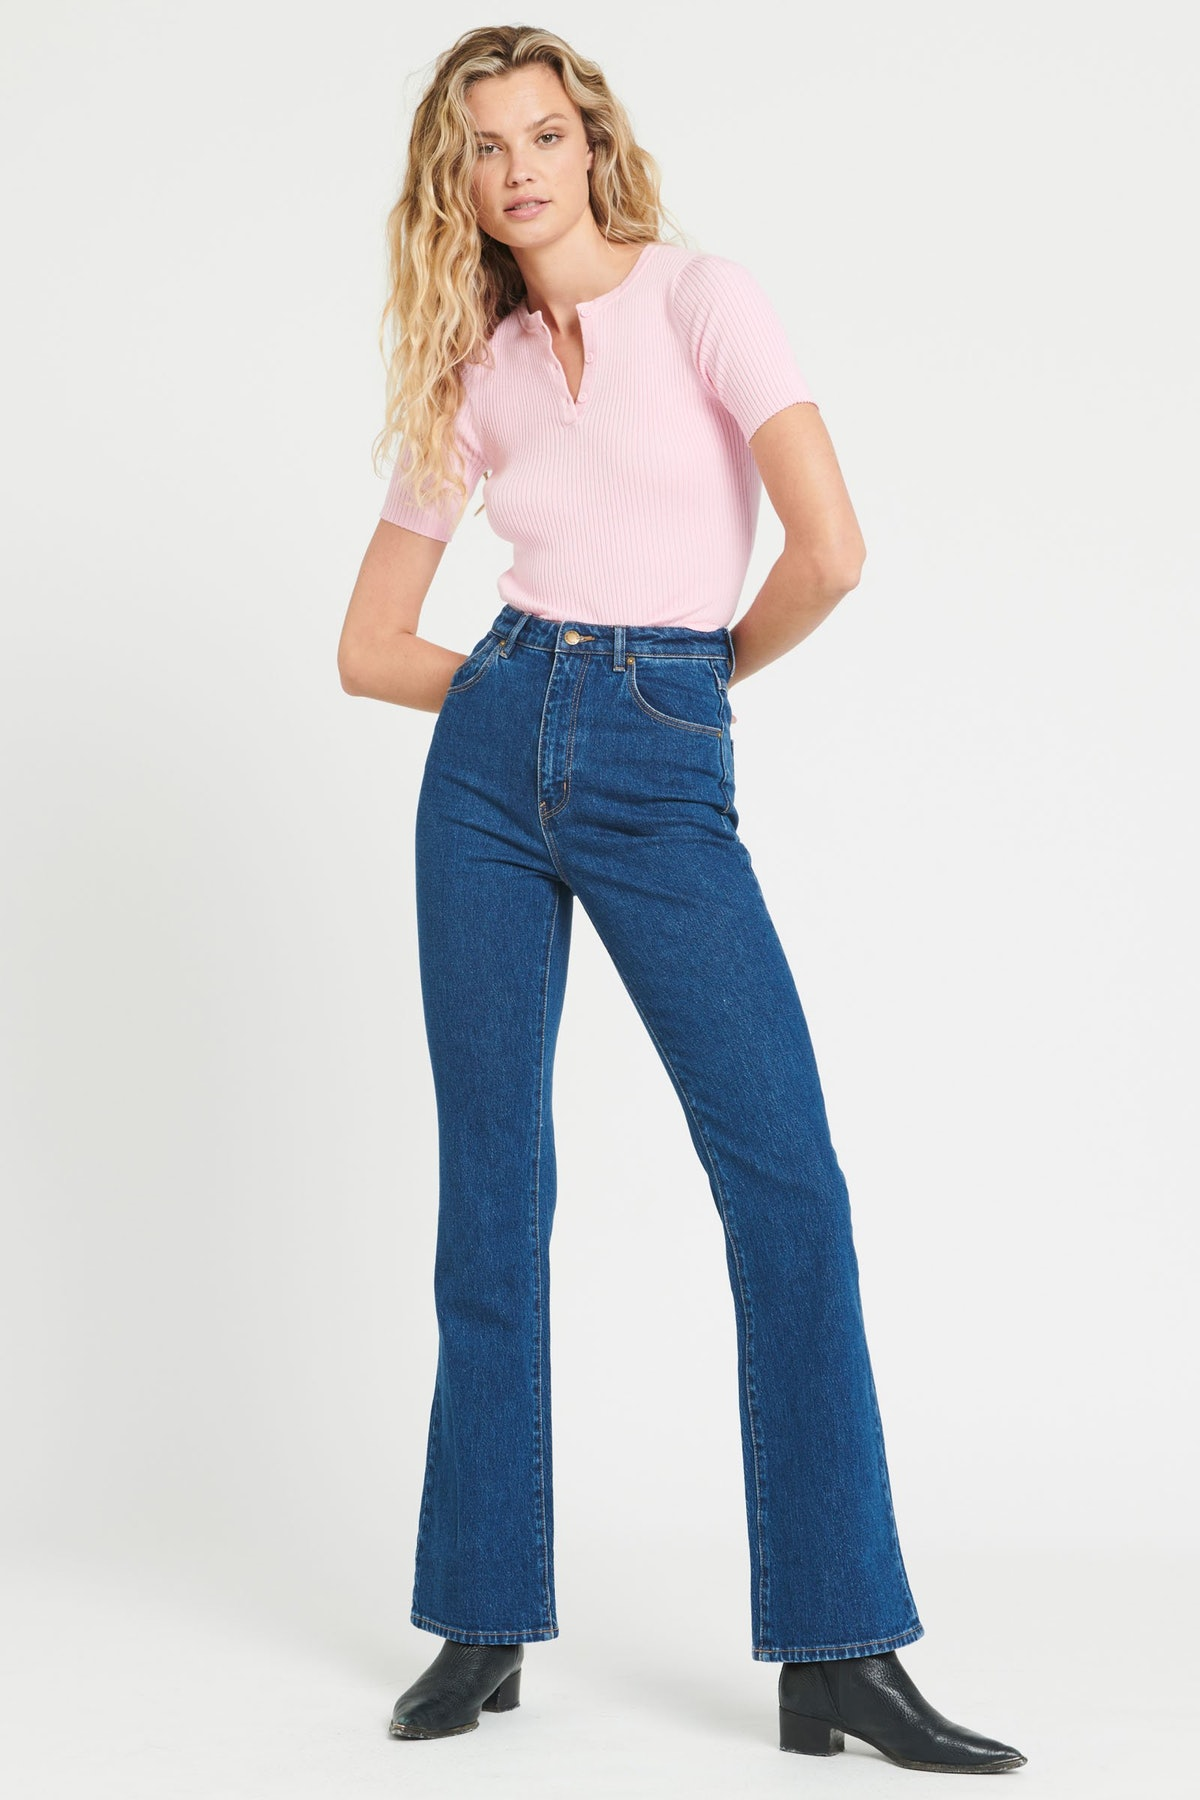 Dusters Bootcut Eco Ruby Blue from Rolla's Jeans.